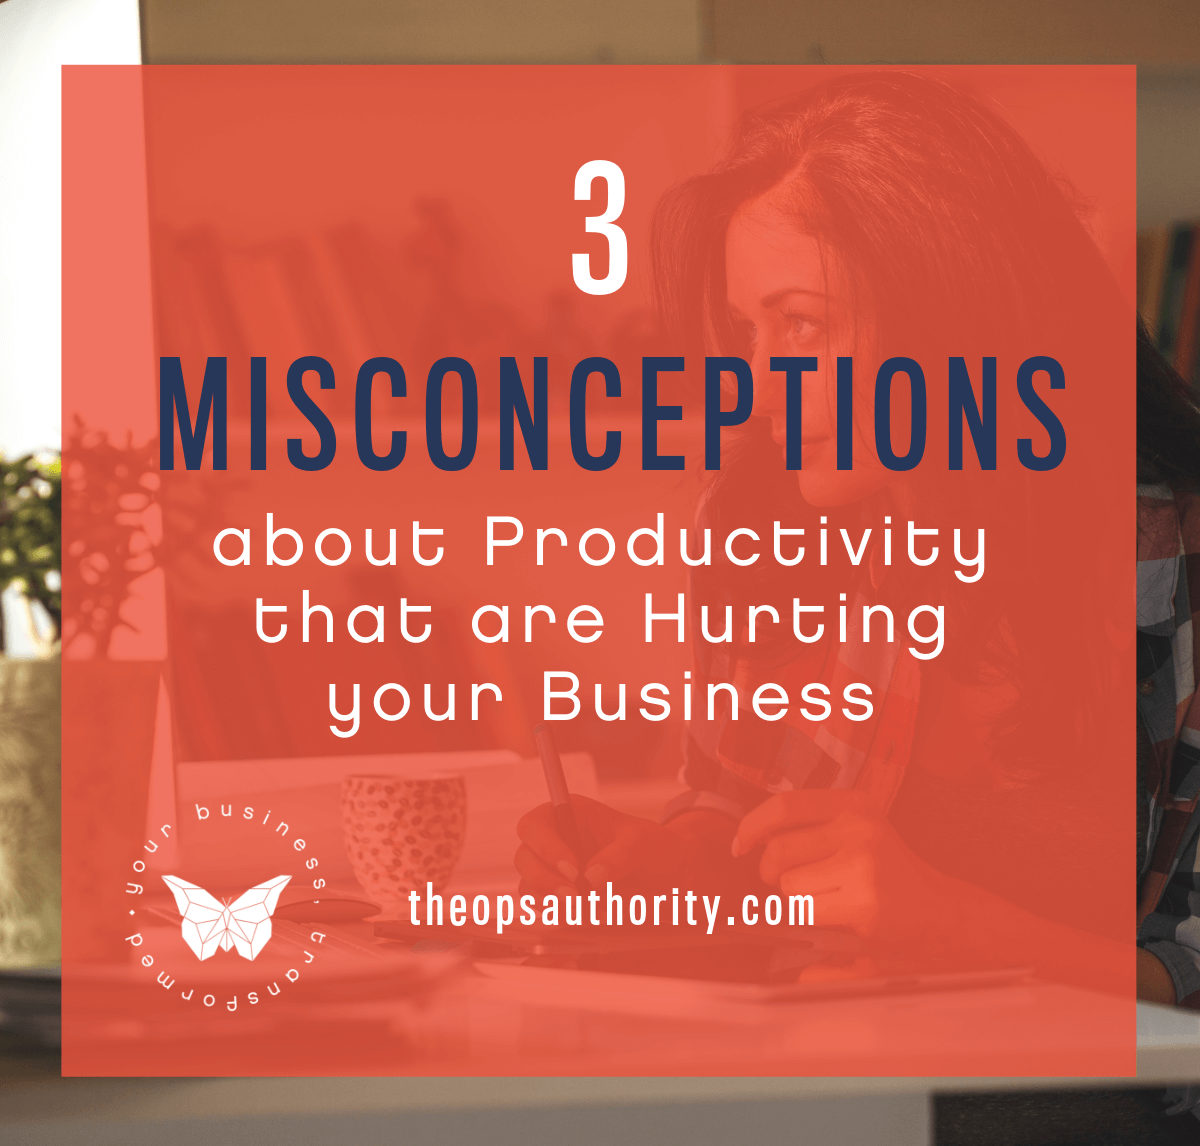 3 Misconceptions about Productivity that are Hurting Your Business